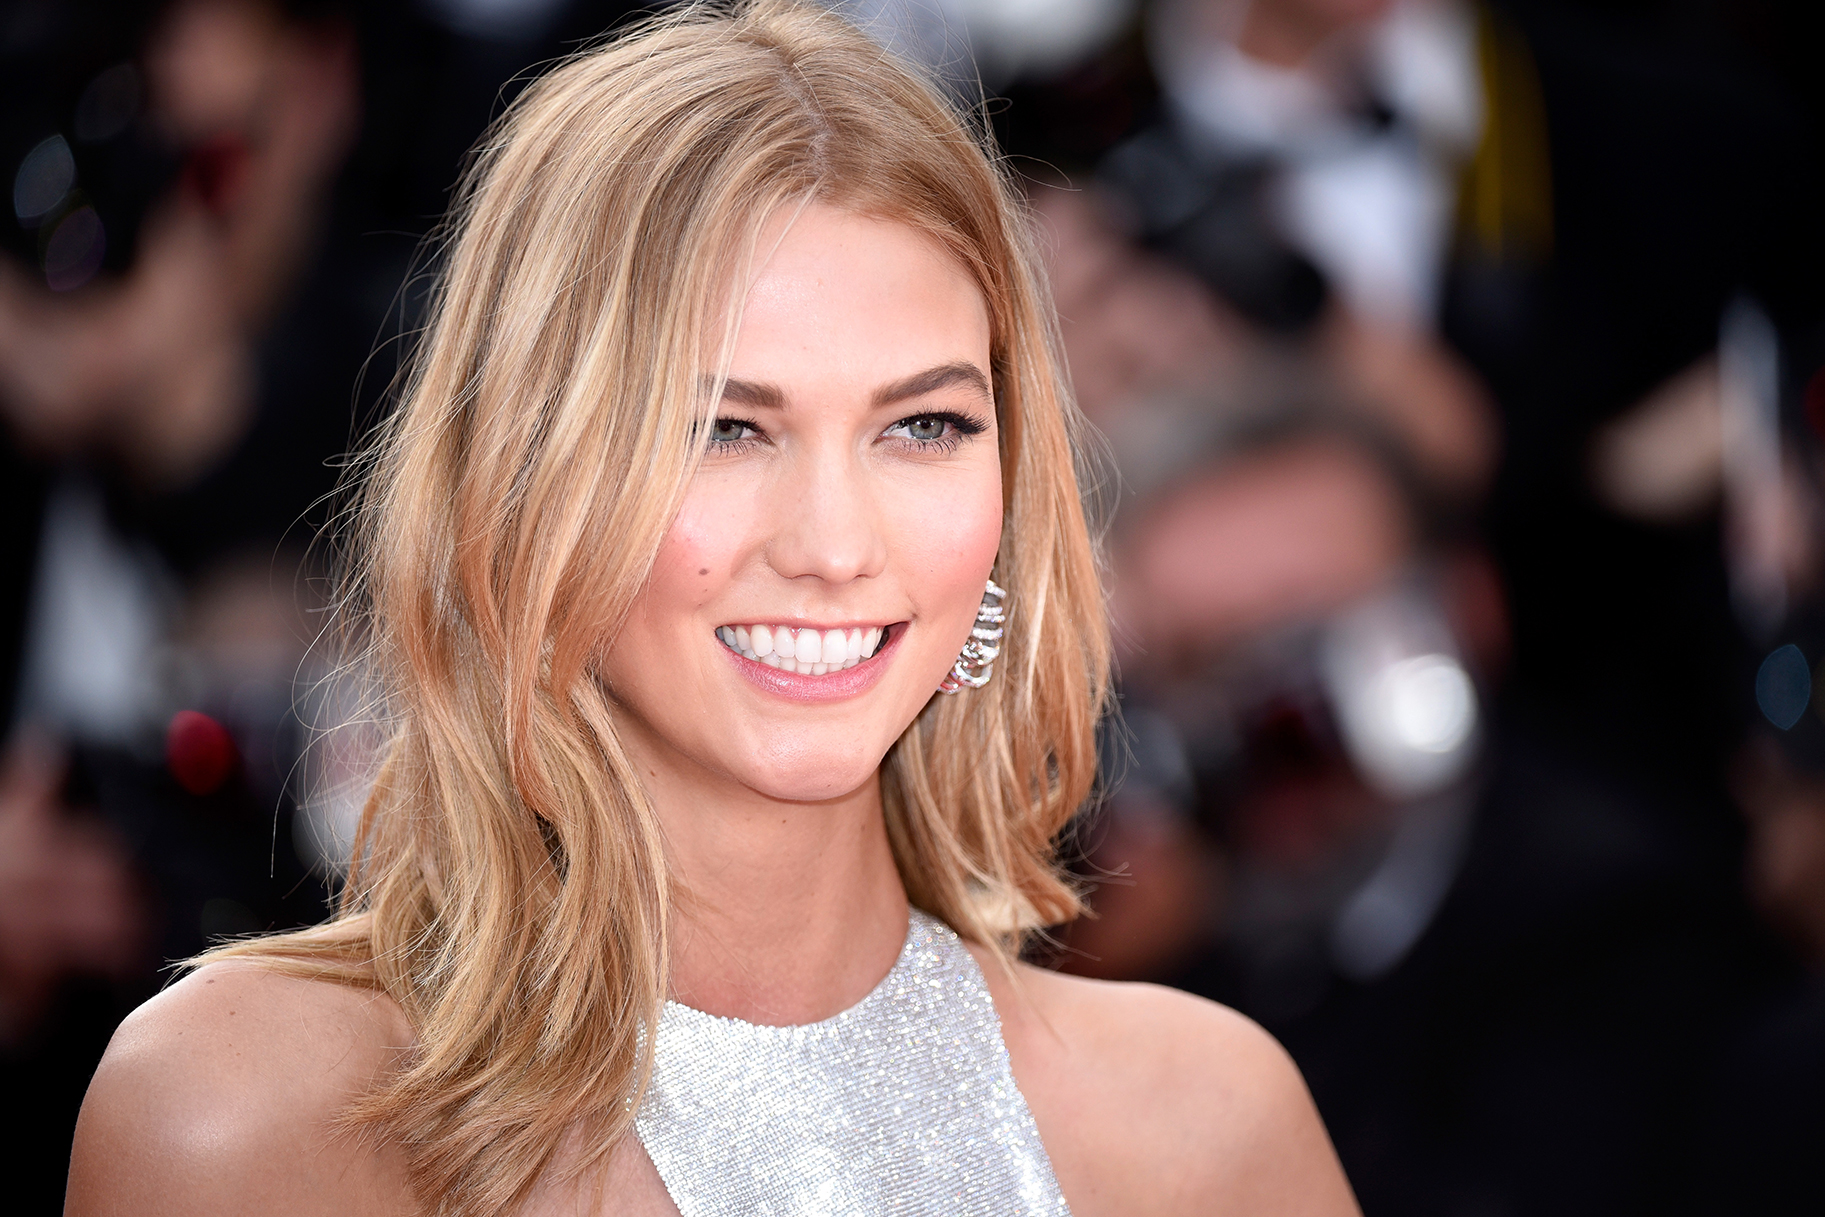 Karlie Kloss New Look